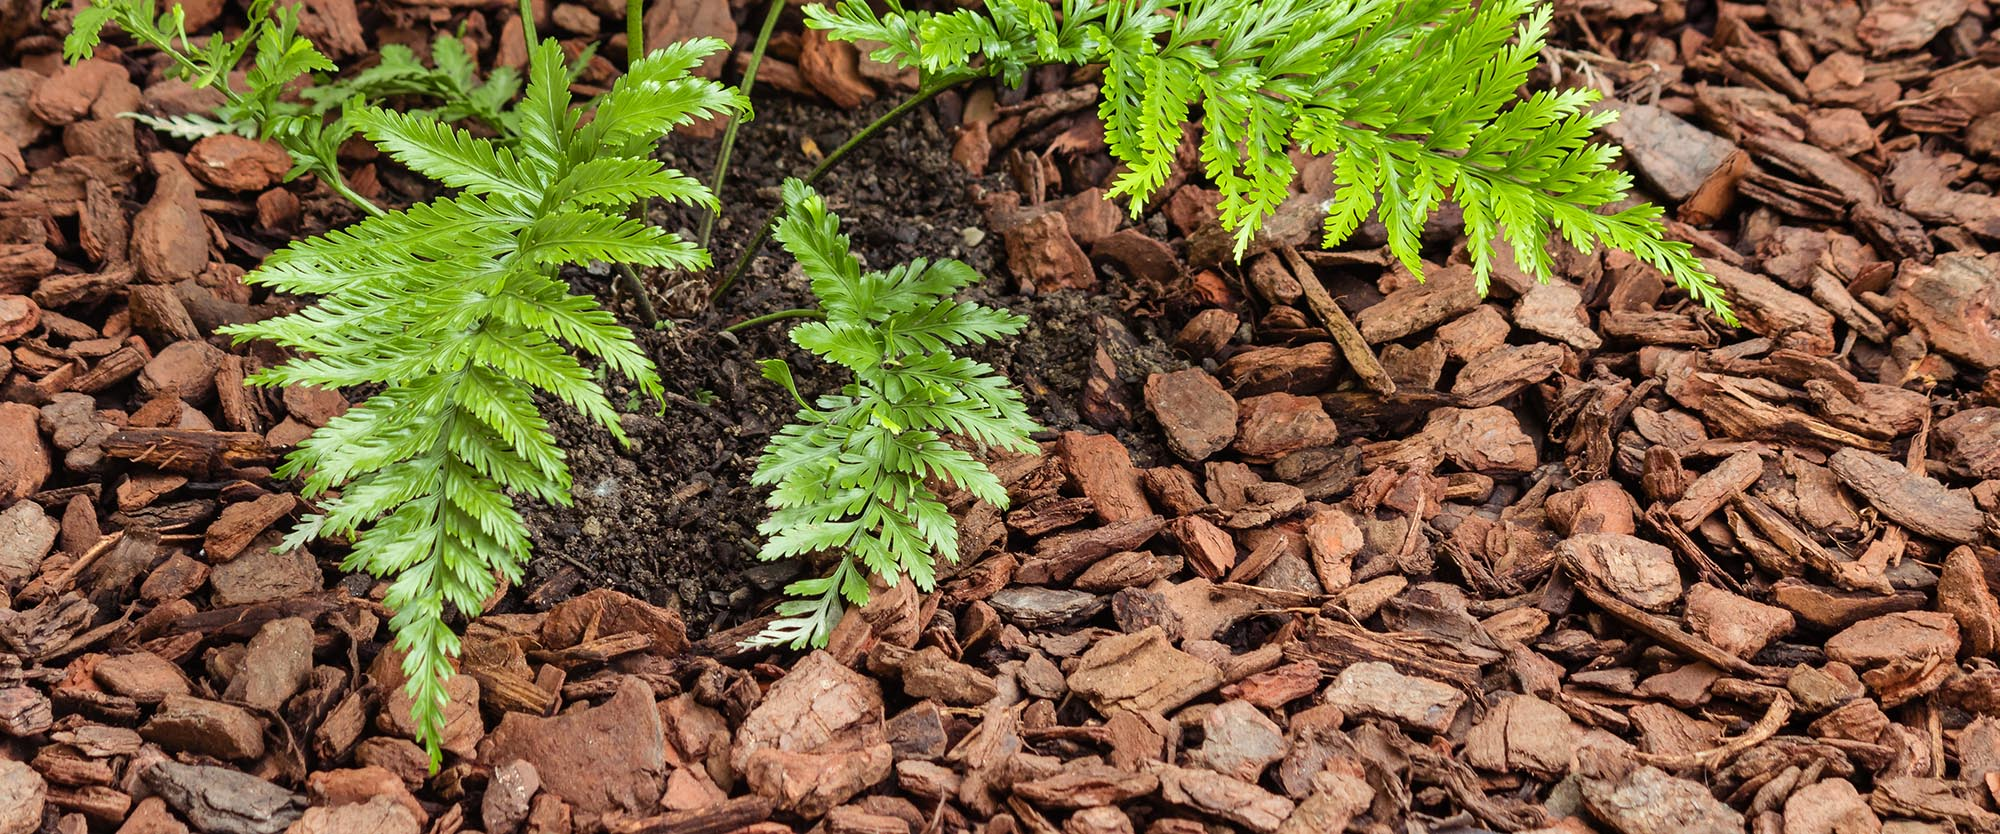 Browse Our Full Selection of Mulch, Sand and Gravel